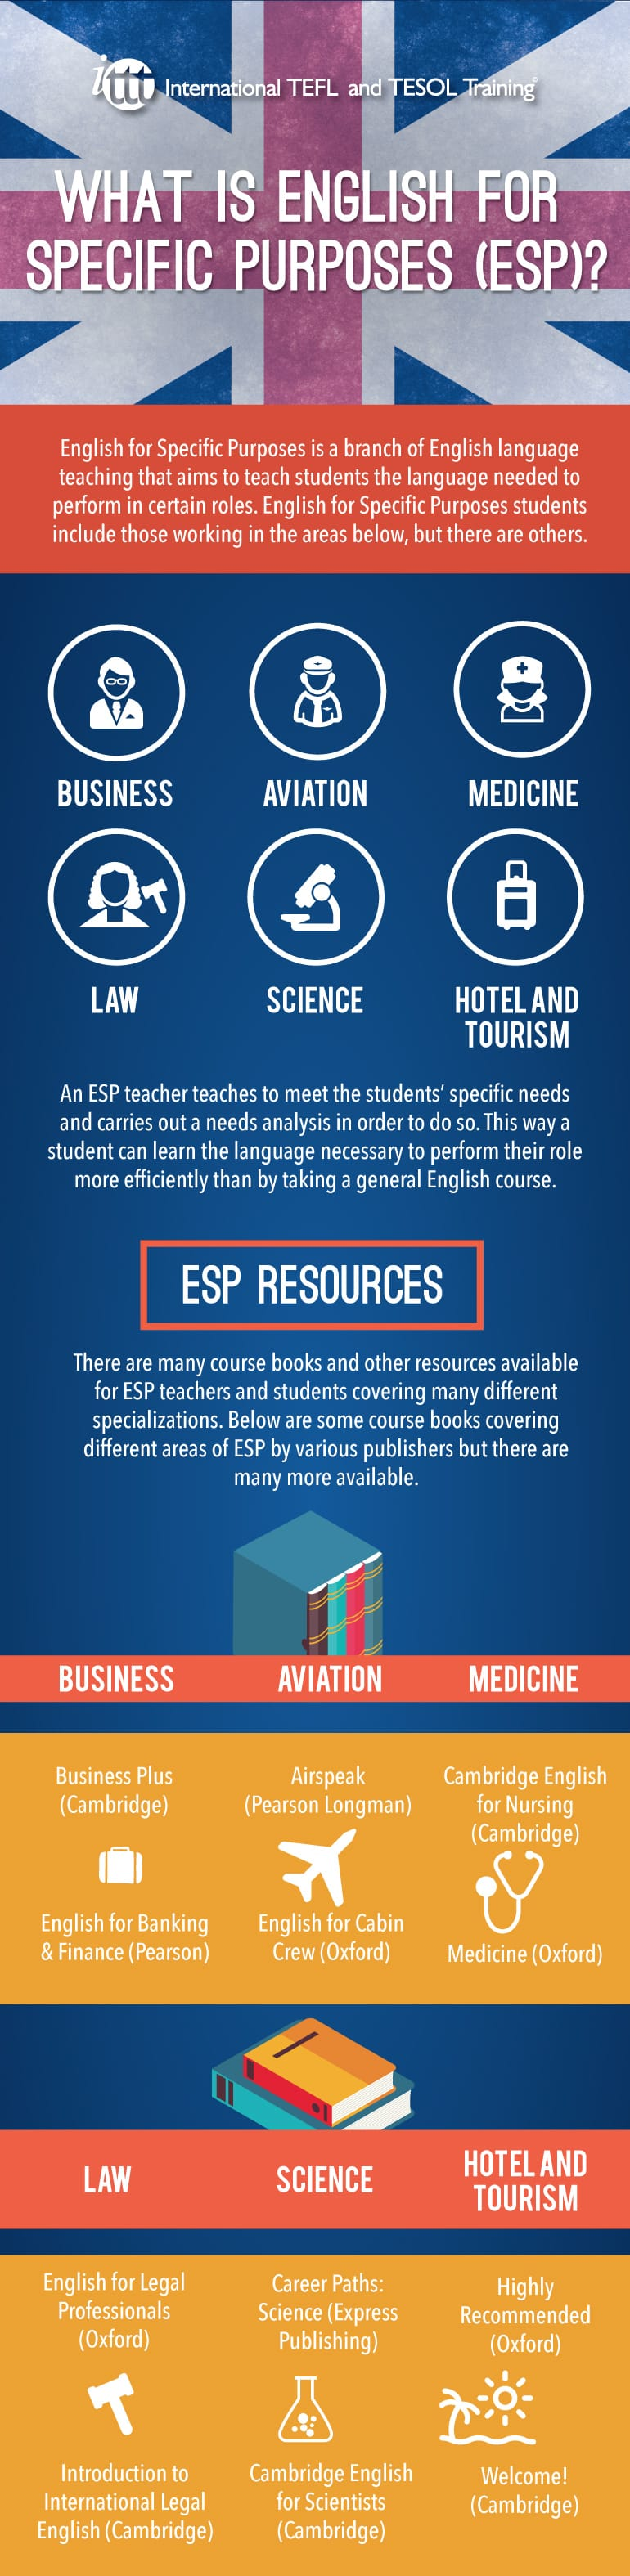 Infographic What is English for Specific Purposes (ESP)?